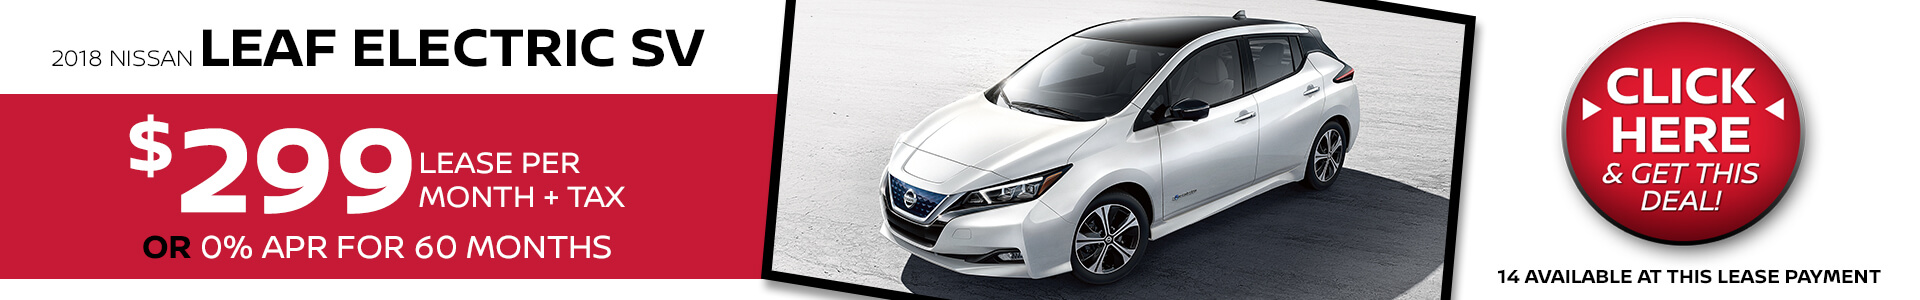 Nissan Leaf $299 Lease